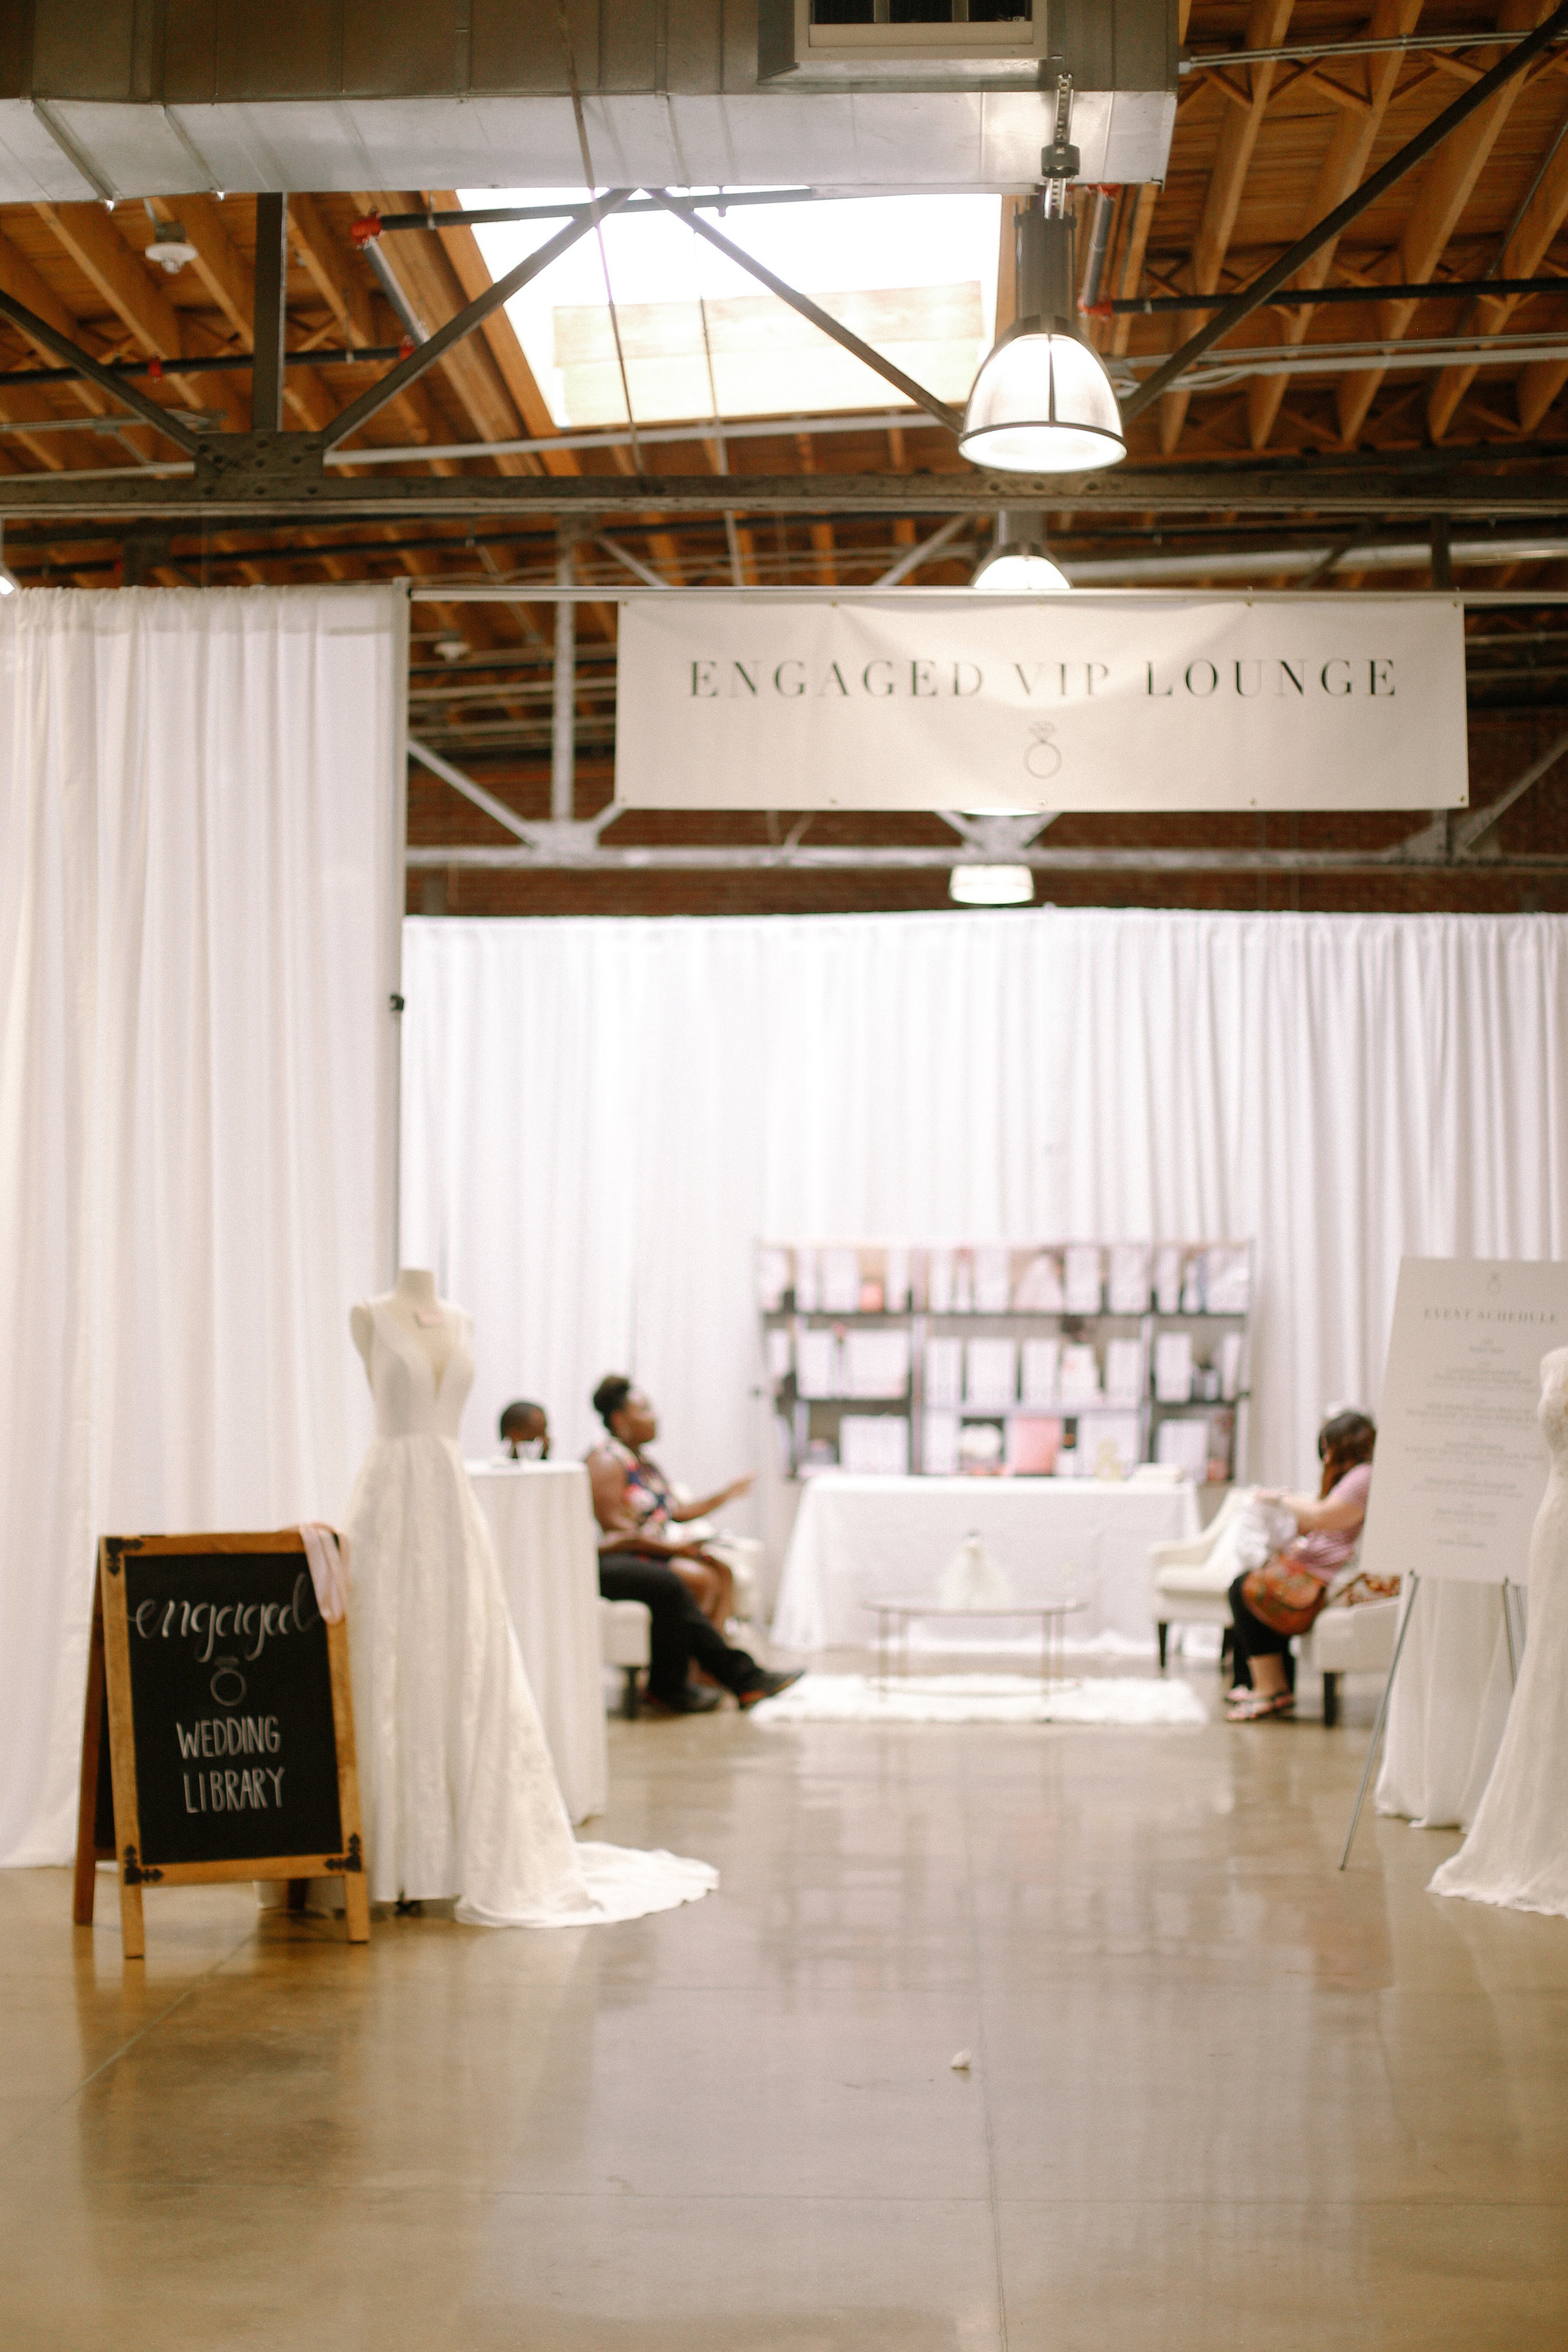 Brides, grooms, friends, and family enjoyed hanging out & relaxing in the new Engaged VIP Lounge!